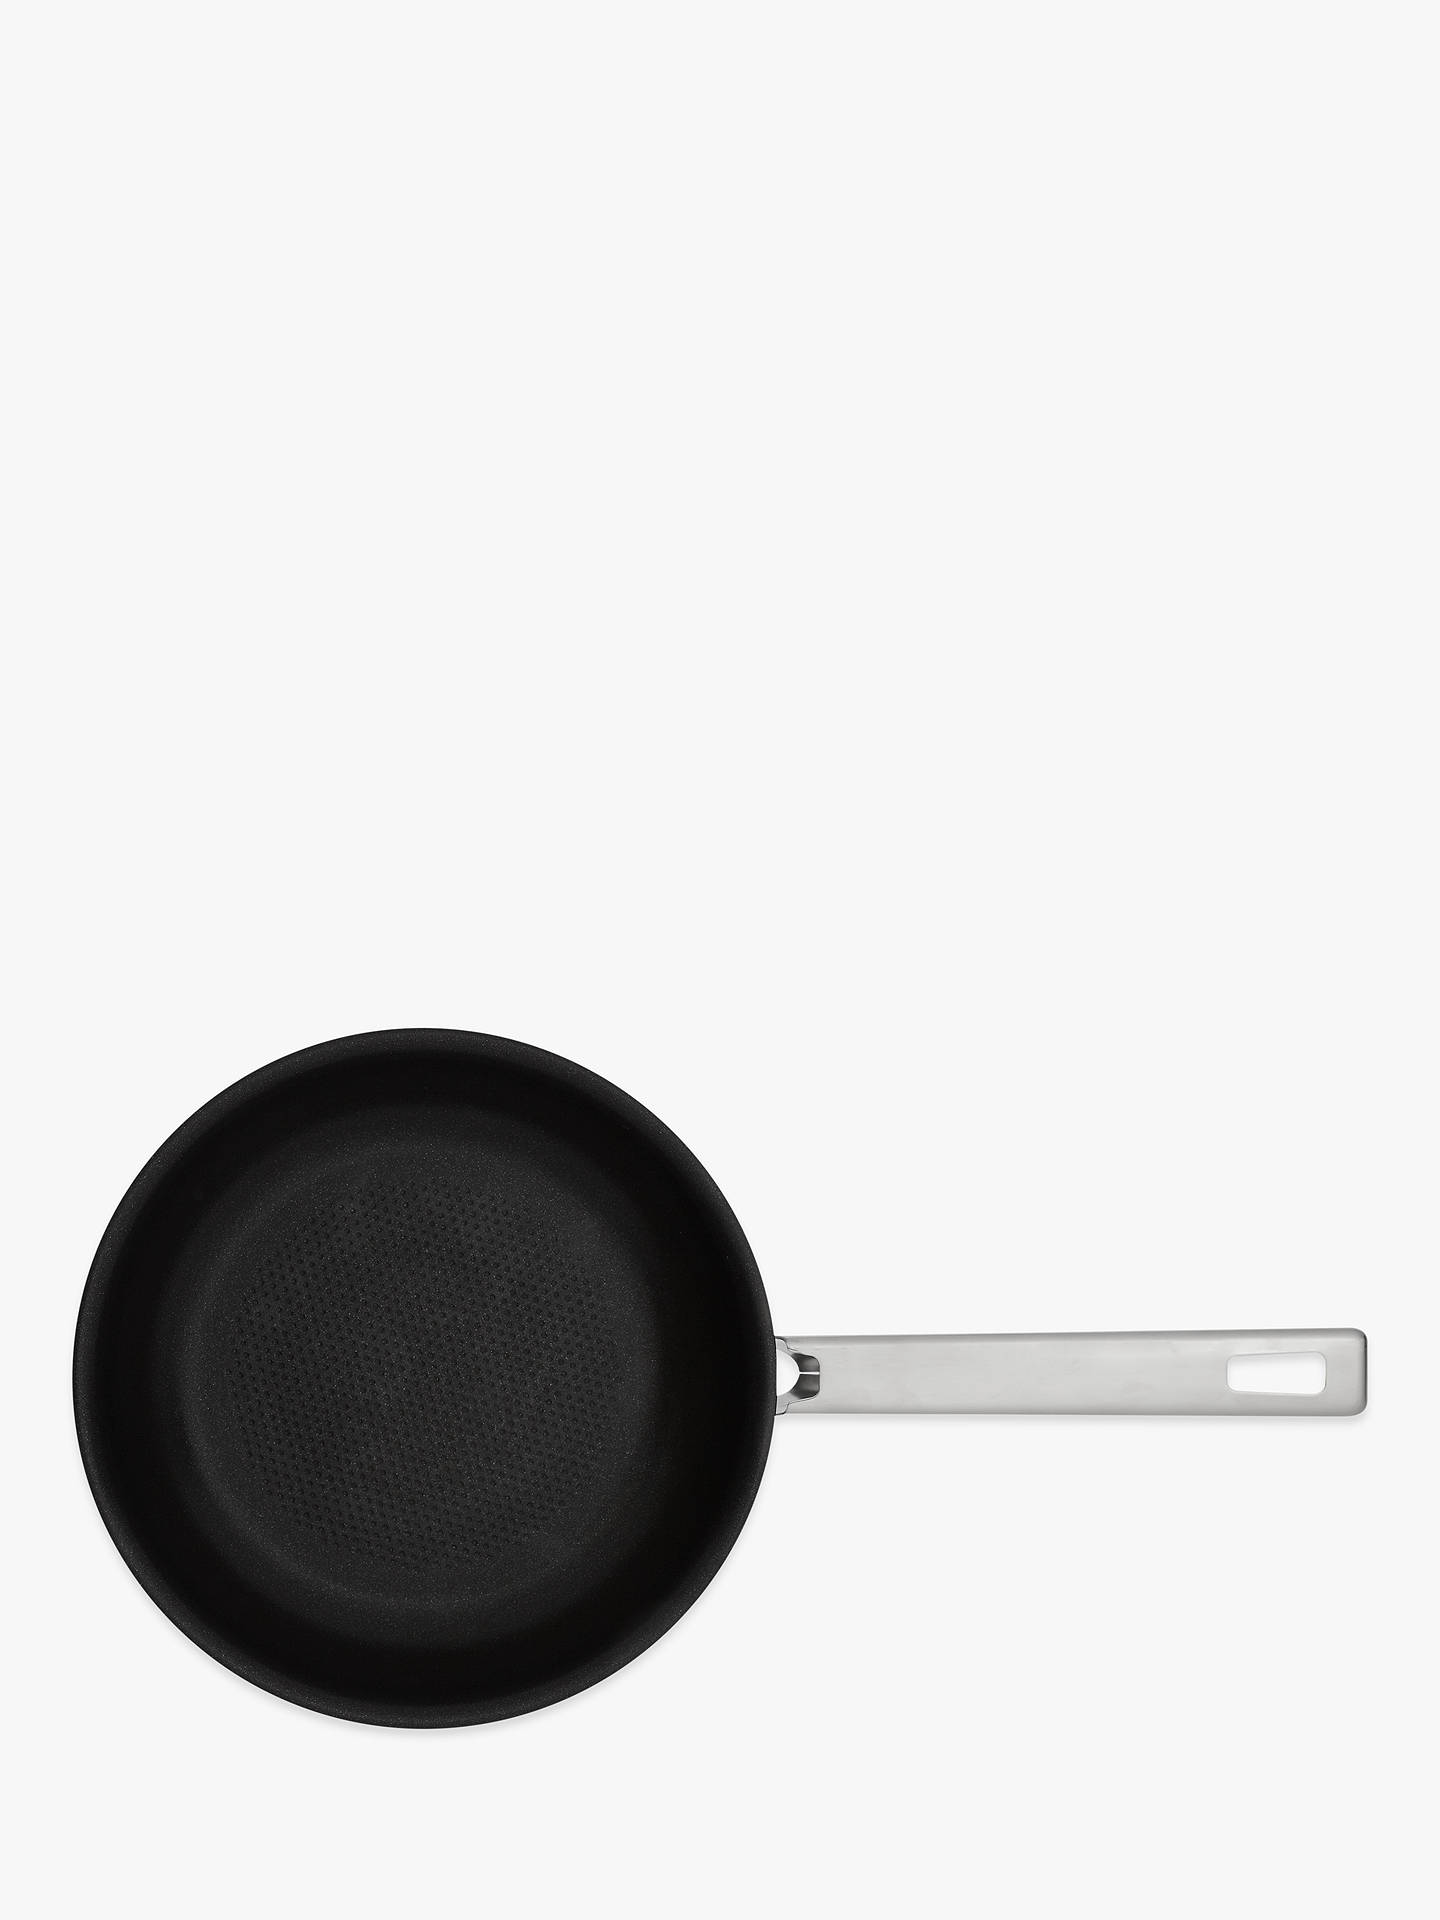 BuyJohn Lewis & Partners Classic Non-Stick Frying Pan, 20cm Online at johnlewis.com